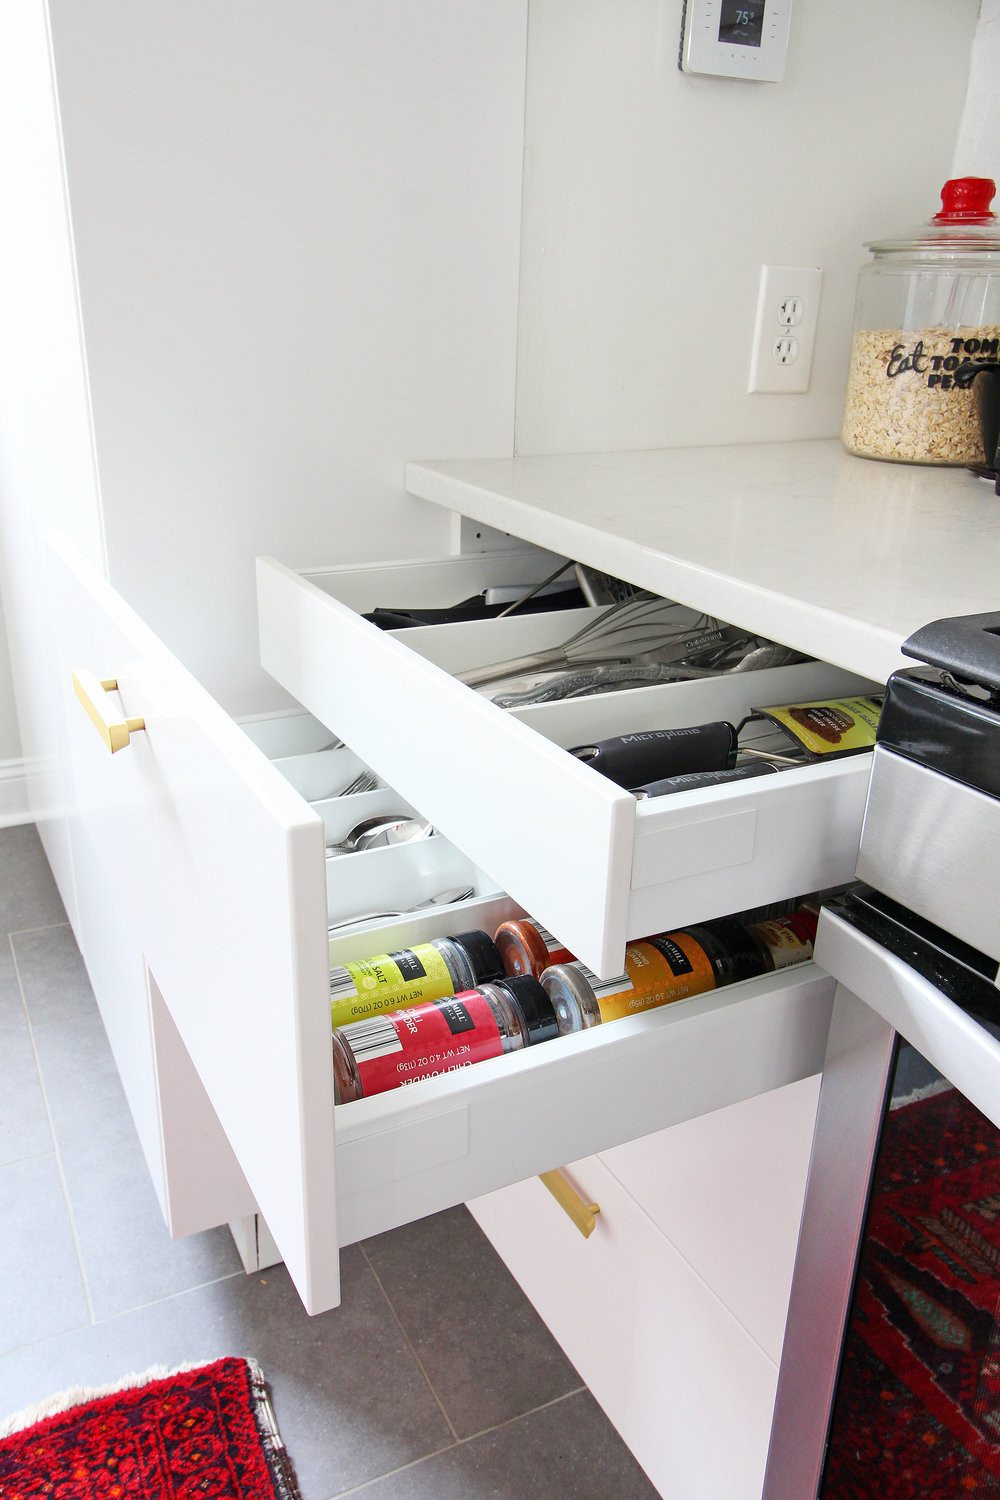 Read my review of our modern white kitchen renovation using IKEA cabinets, Caesarstone countertops, and gray tile floors two years after we renovated. We love the fact that you can customize the interior like this drawer within a drawer!